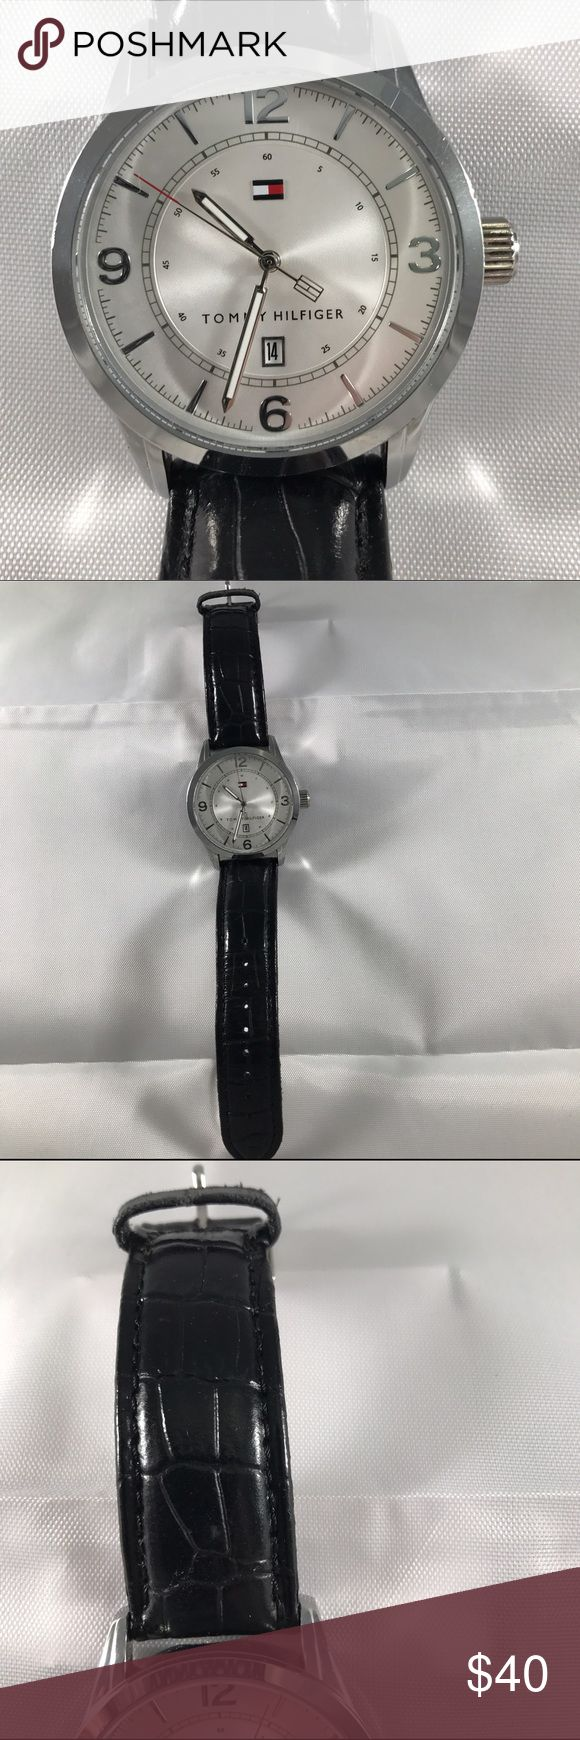 Tommy Hilfiger Watch This was used as a display watch so shows minor wear from being tried on  no scratches battery is working genuine leather   Retails for $65 Tommy Hilfiger Jewelry